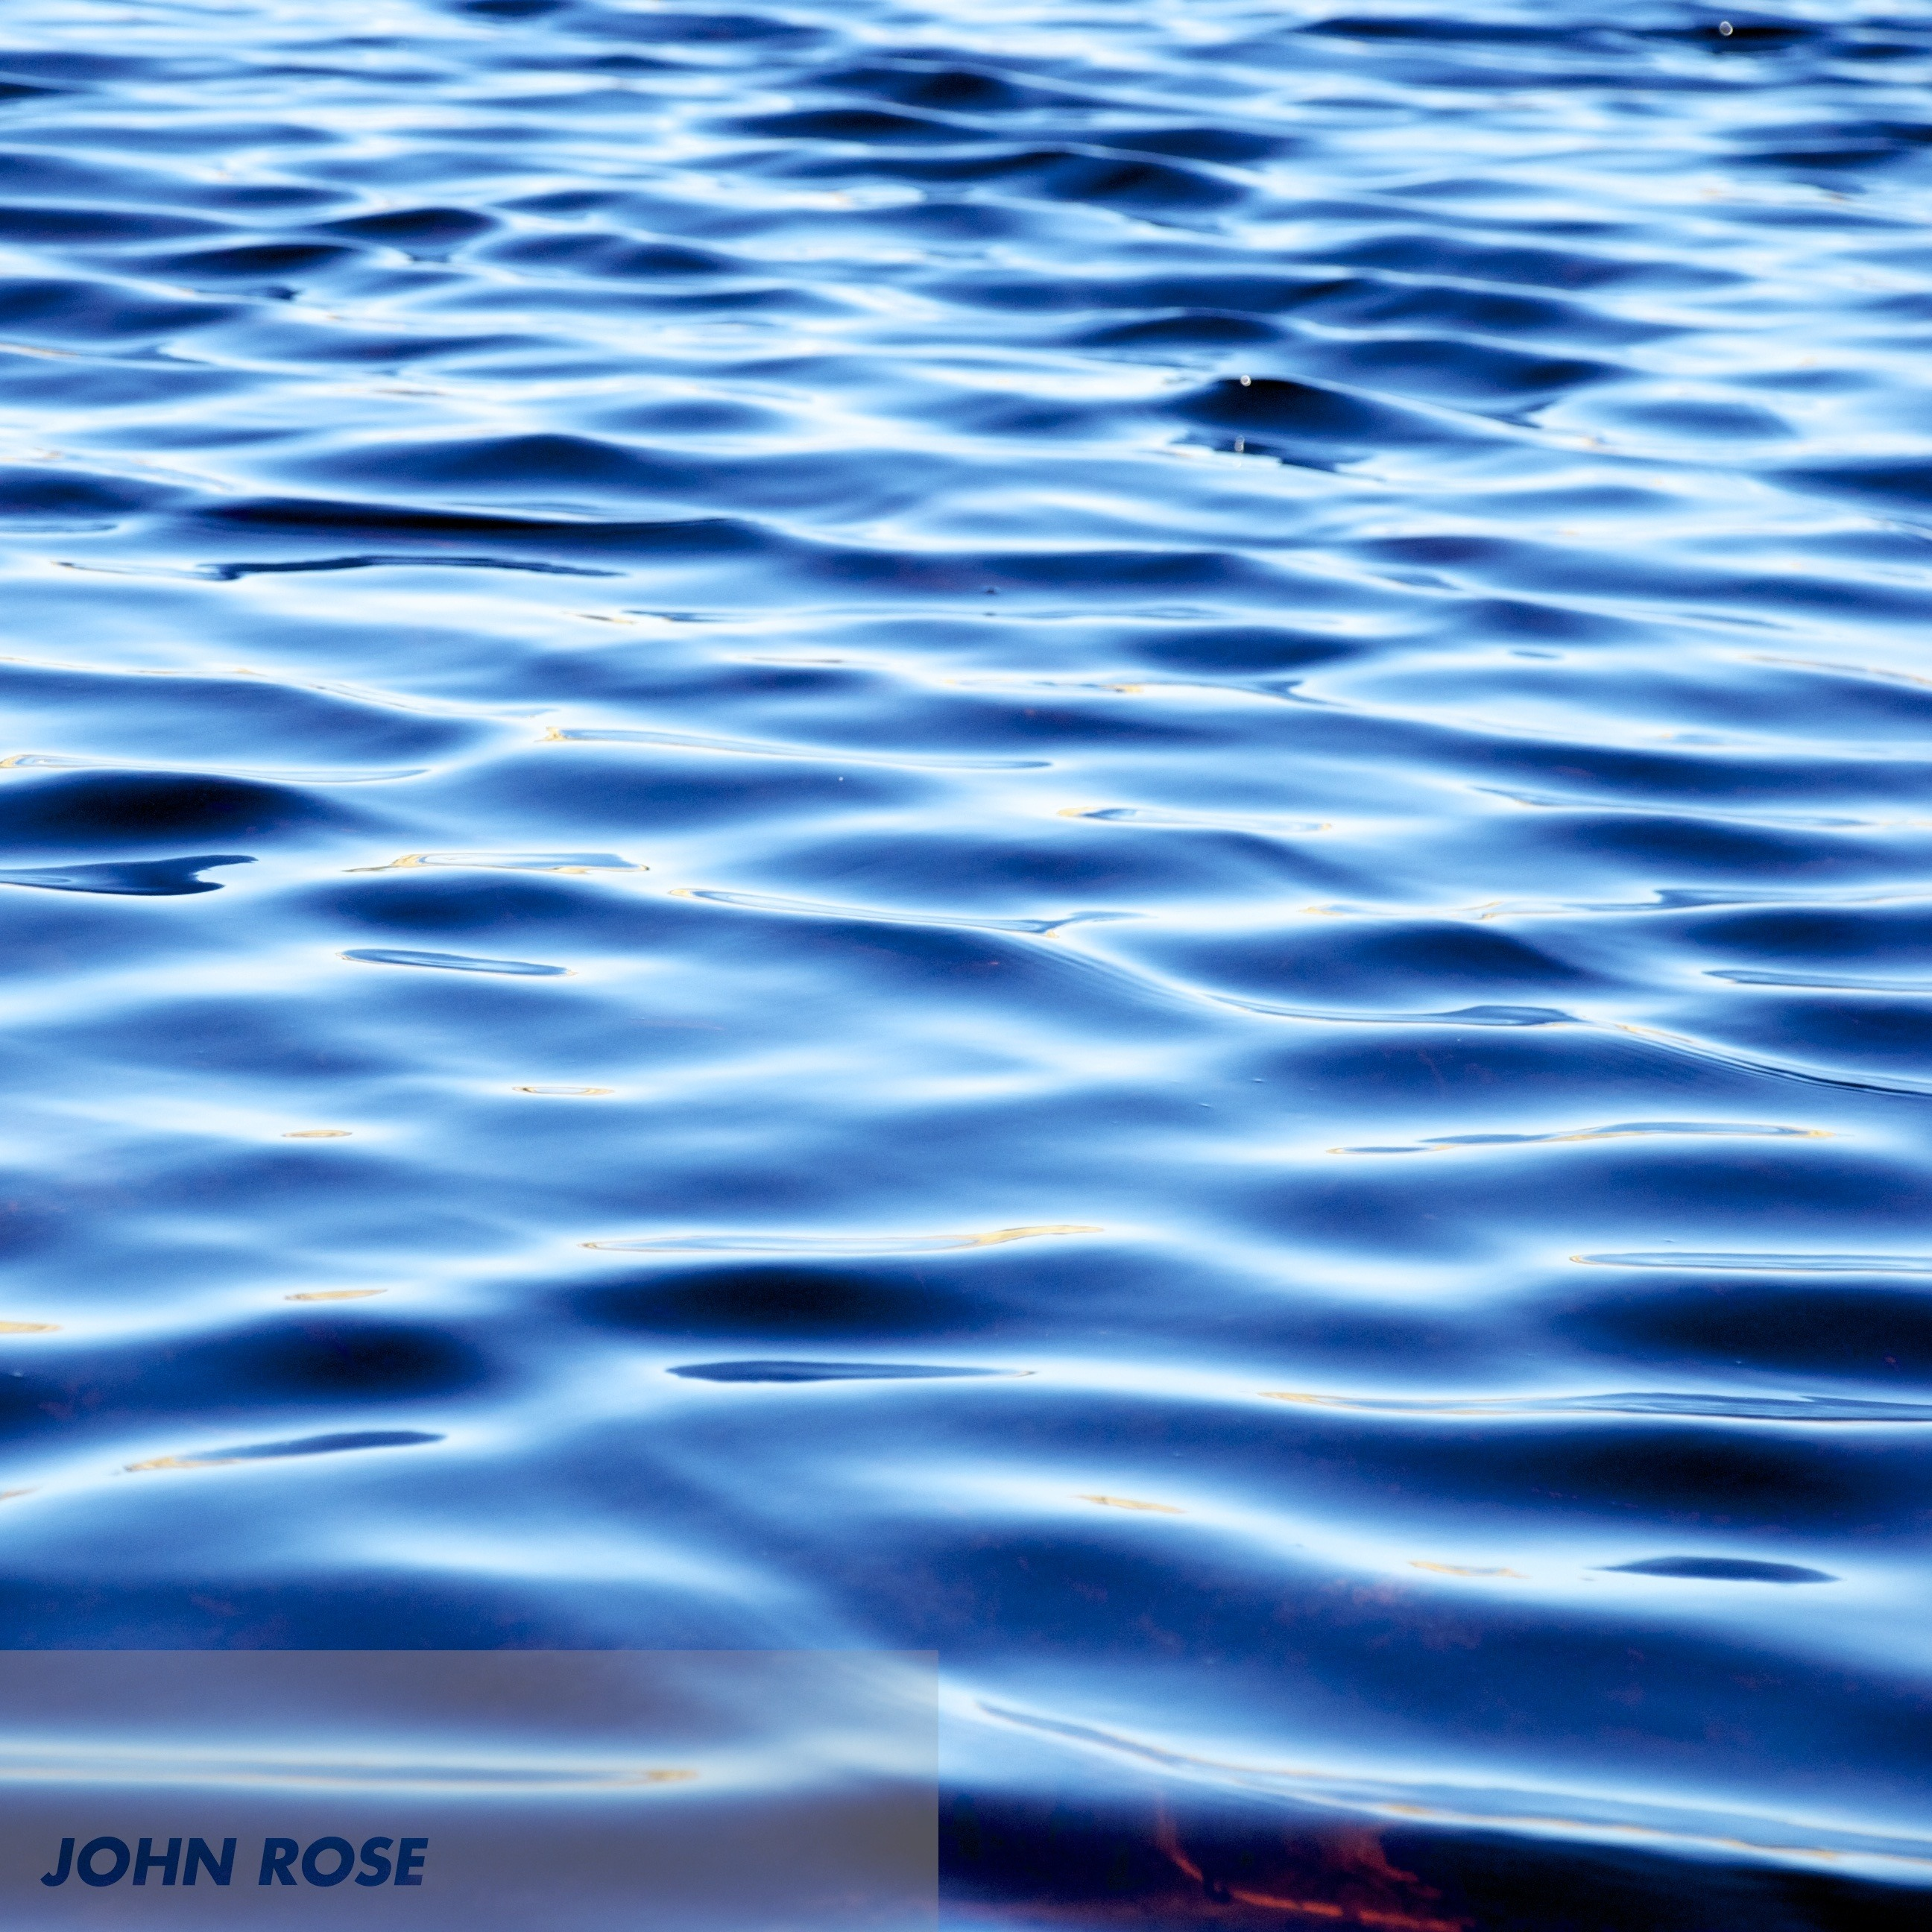 John Rose Photographic artwork of pattern in nature